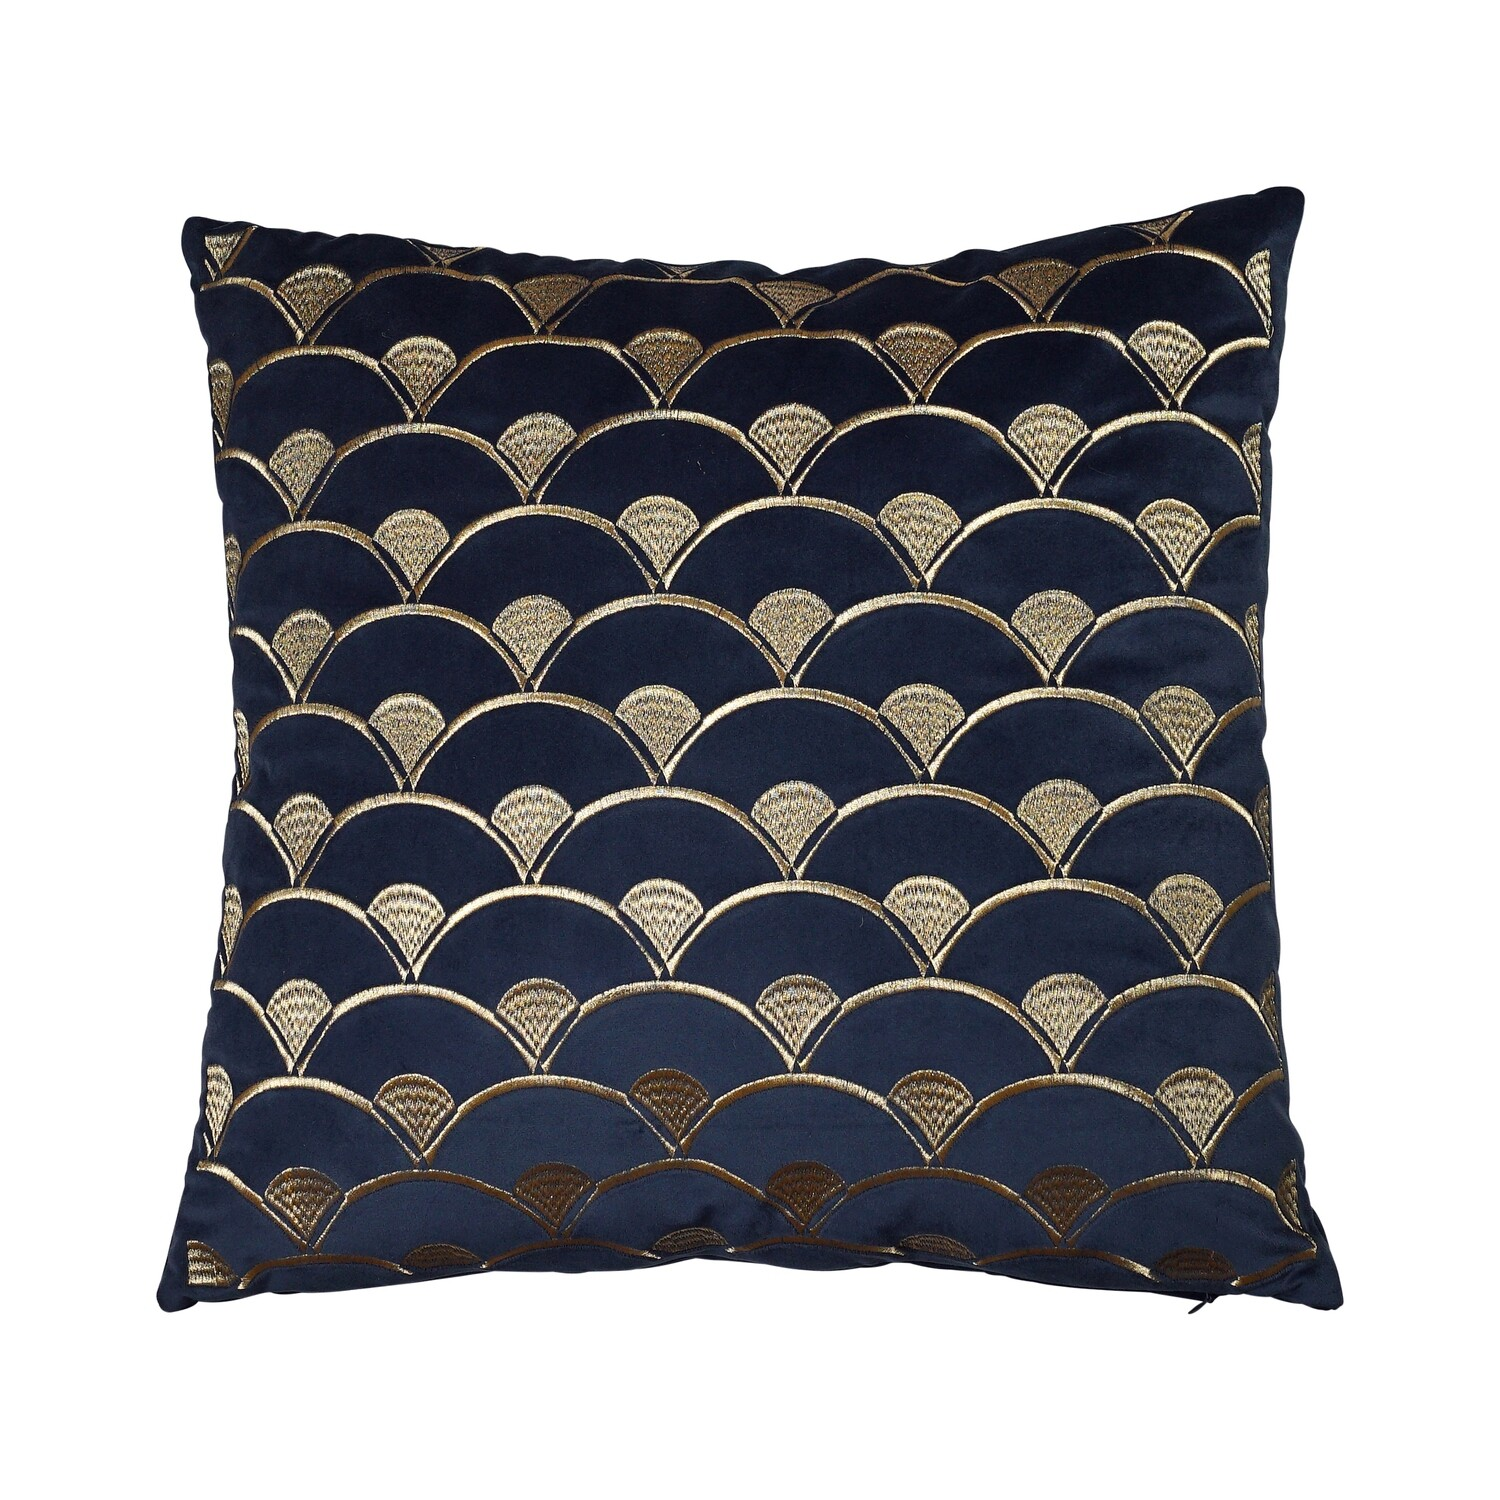 Miles Scale Cushions